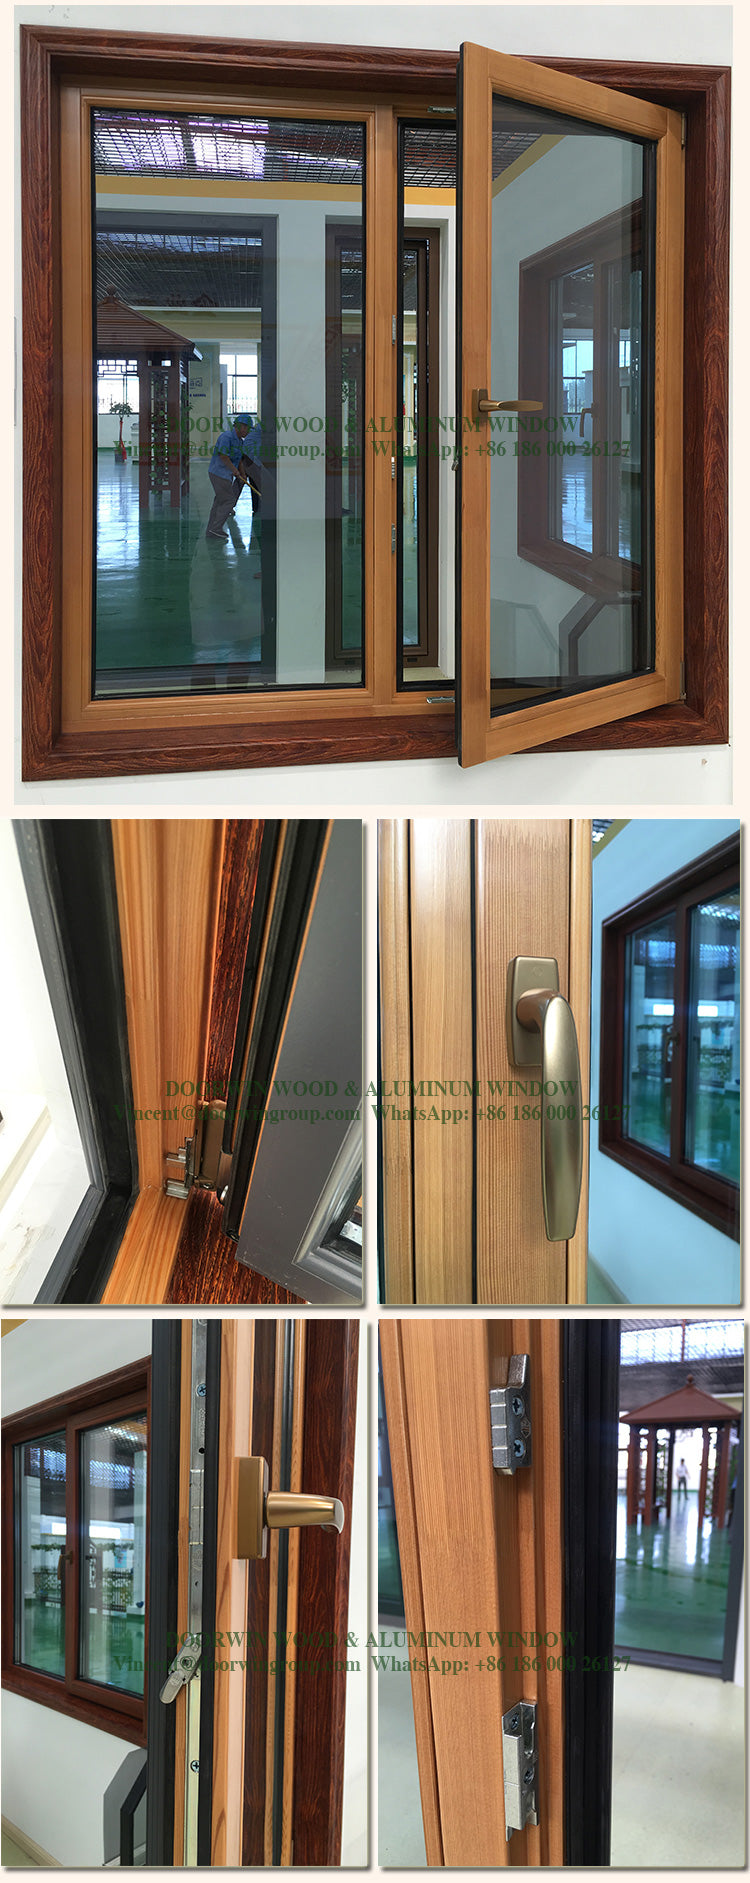 tilt turn window-24-02